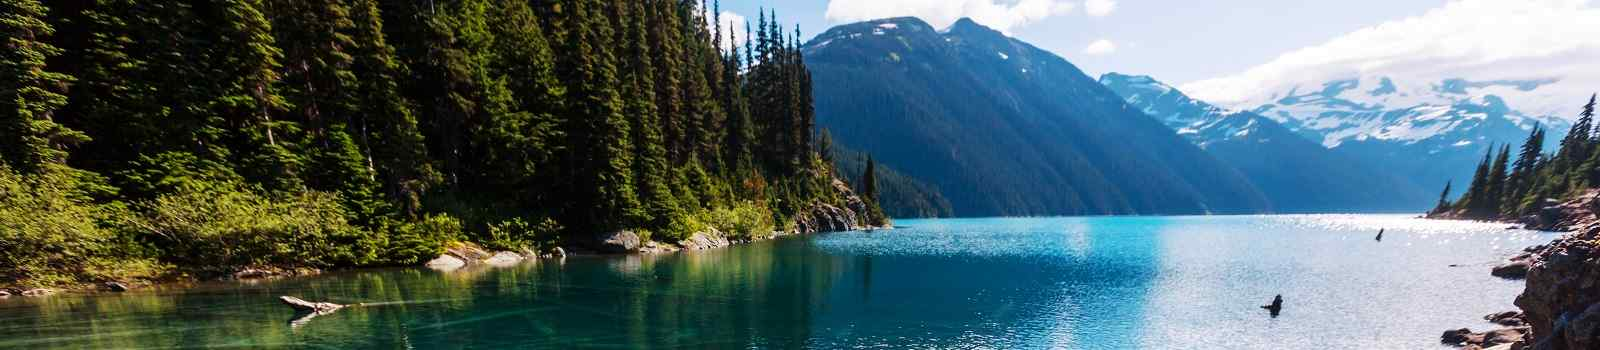 ALGONQUIN Hike to turquoise Garibaldi Lake near Whistler  BC  Canada shutterstock 488866768